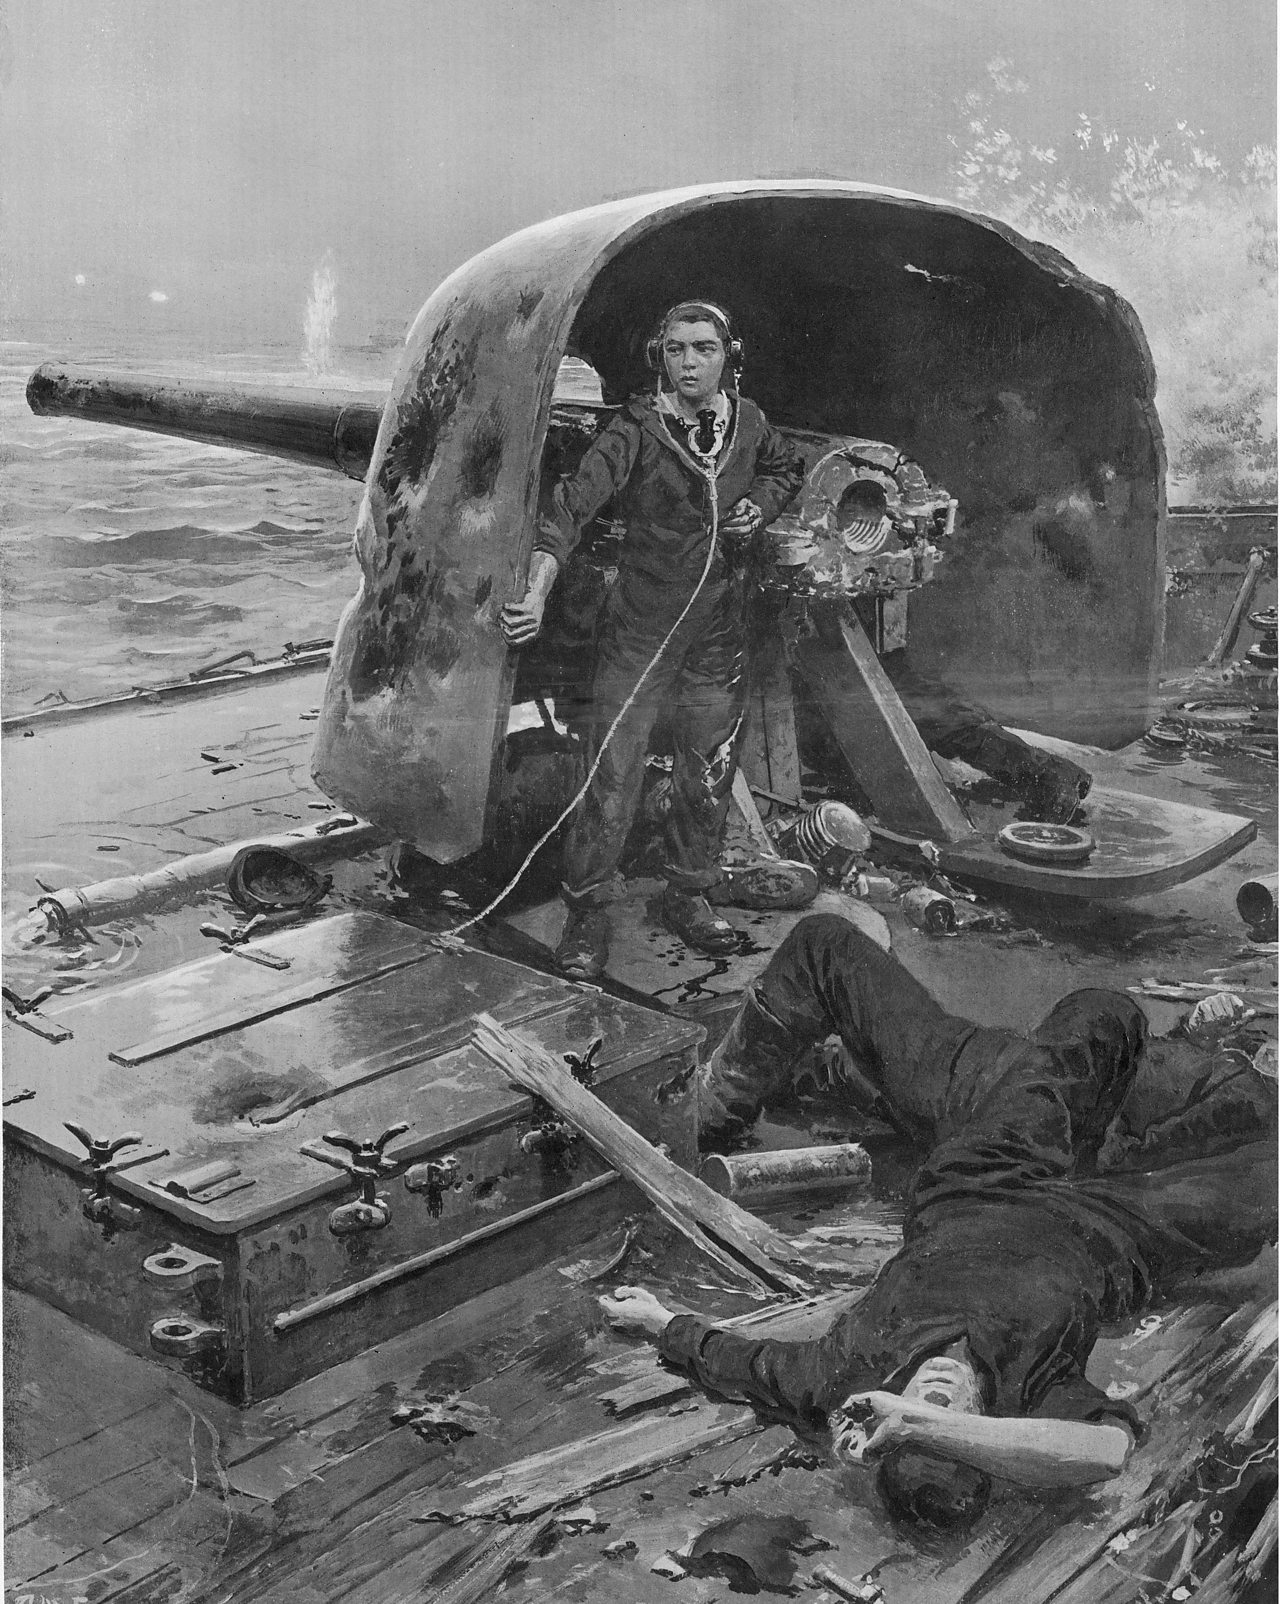 An image of Jack Cornwell helping out during the Battle of Jutland